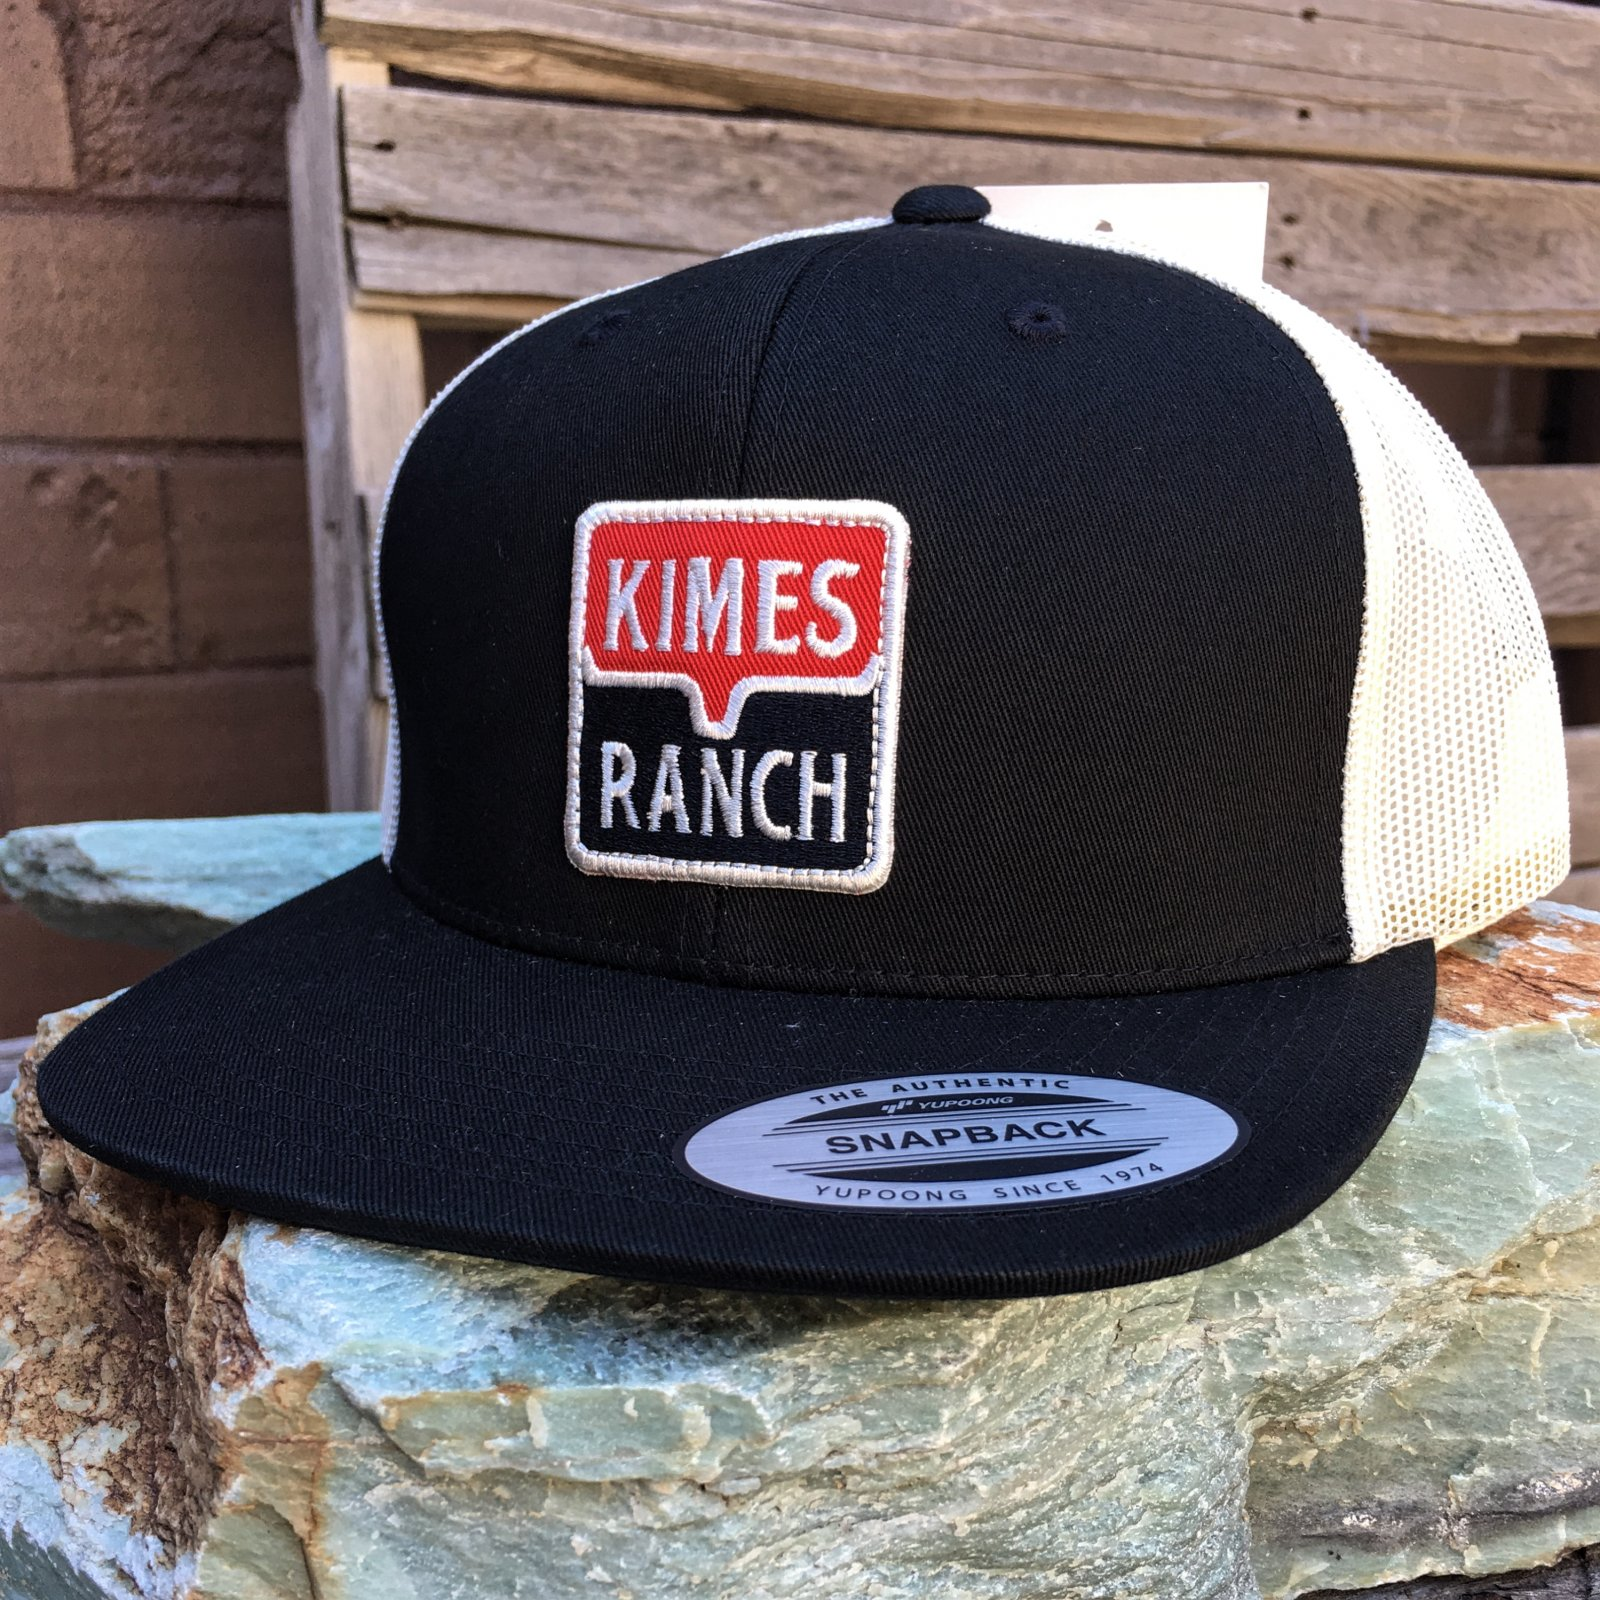 Explicit Warning from Kimes Ranch